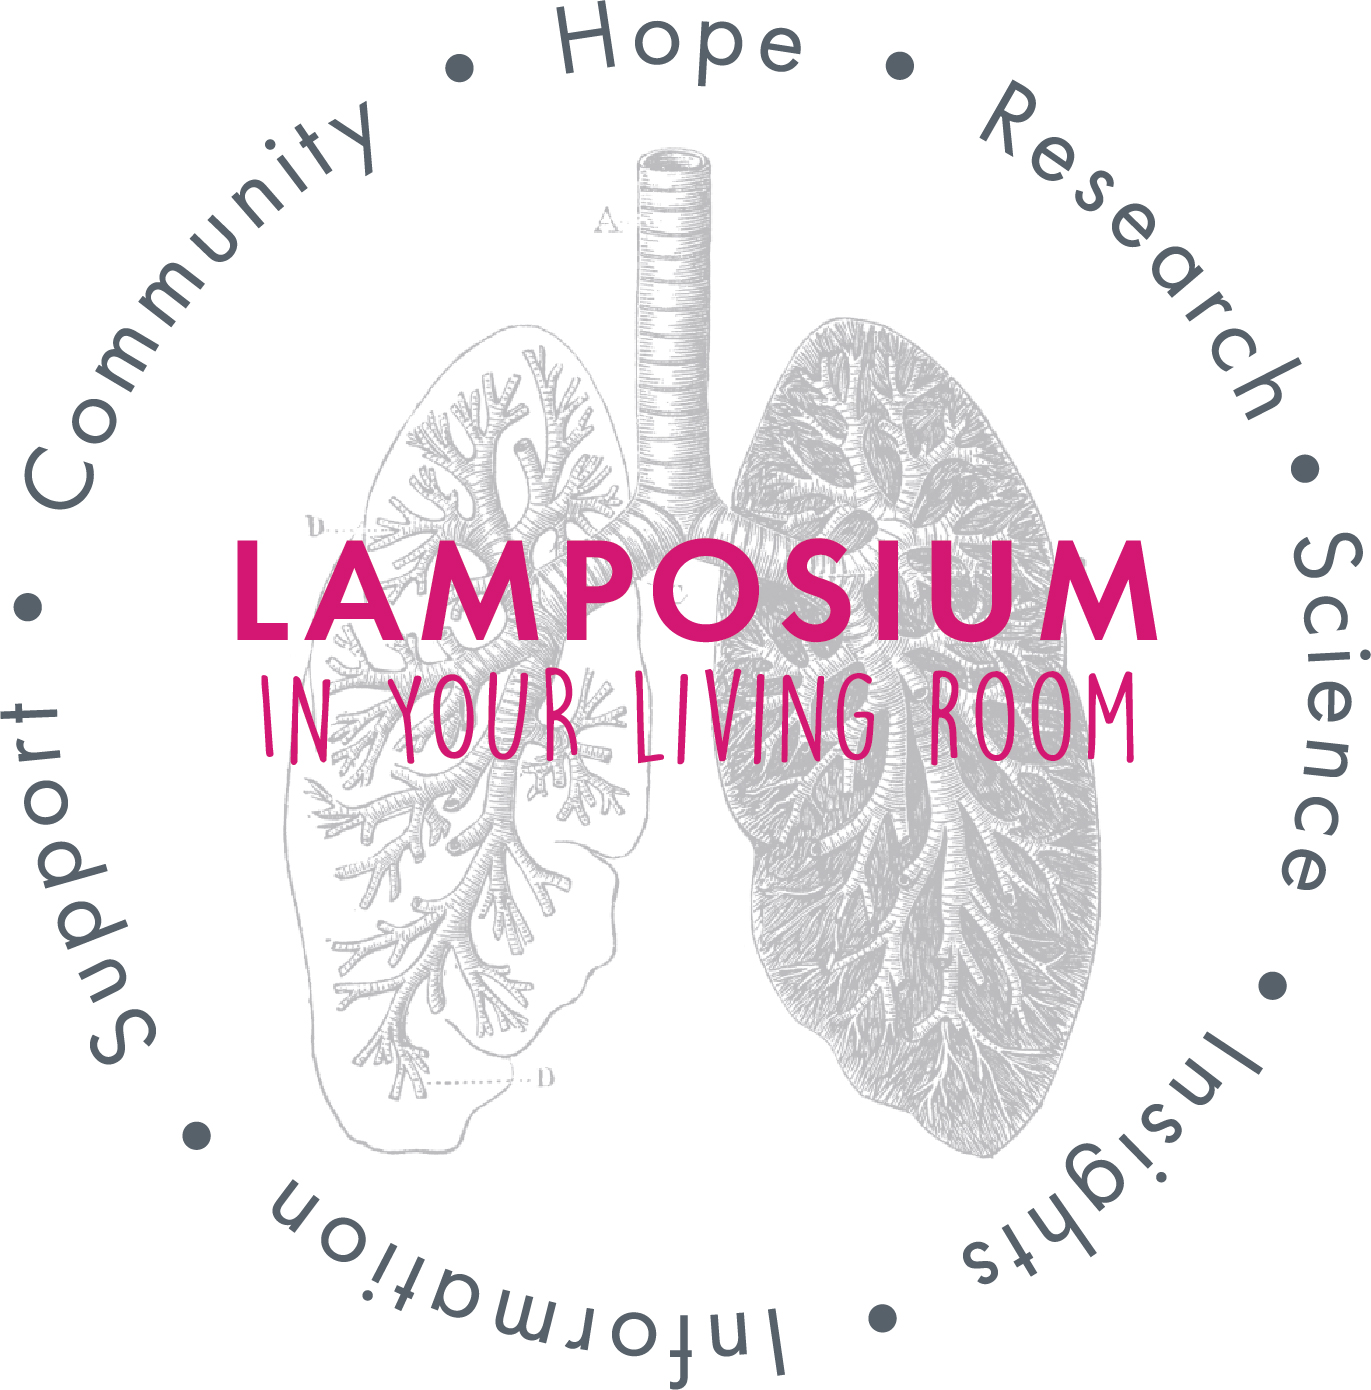 LAMposium In Your Living Room